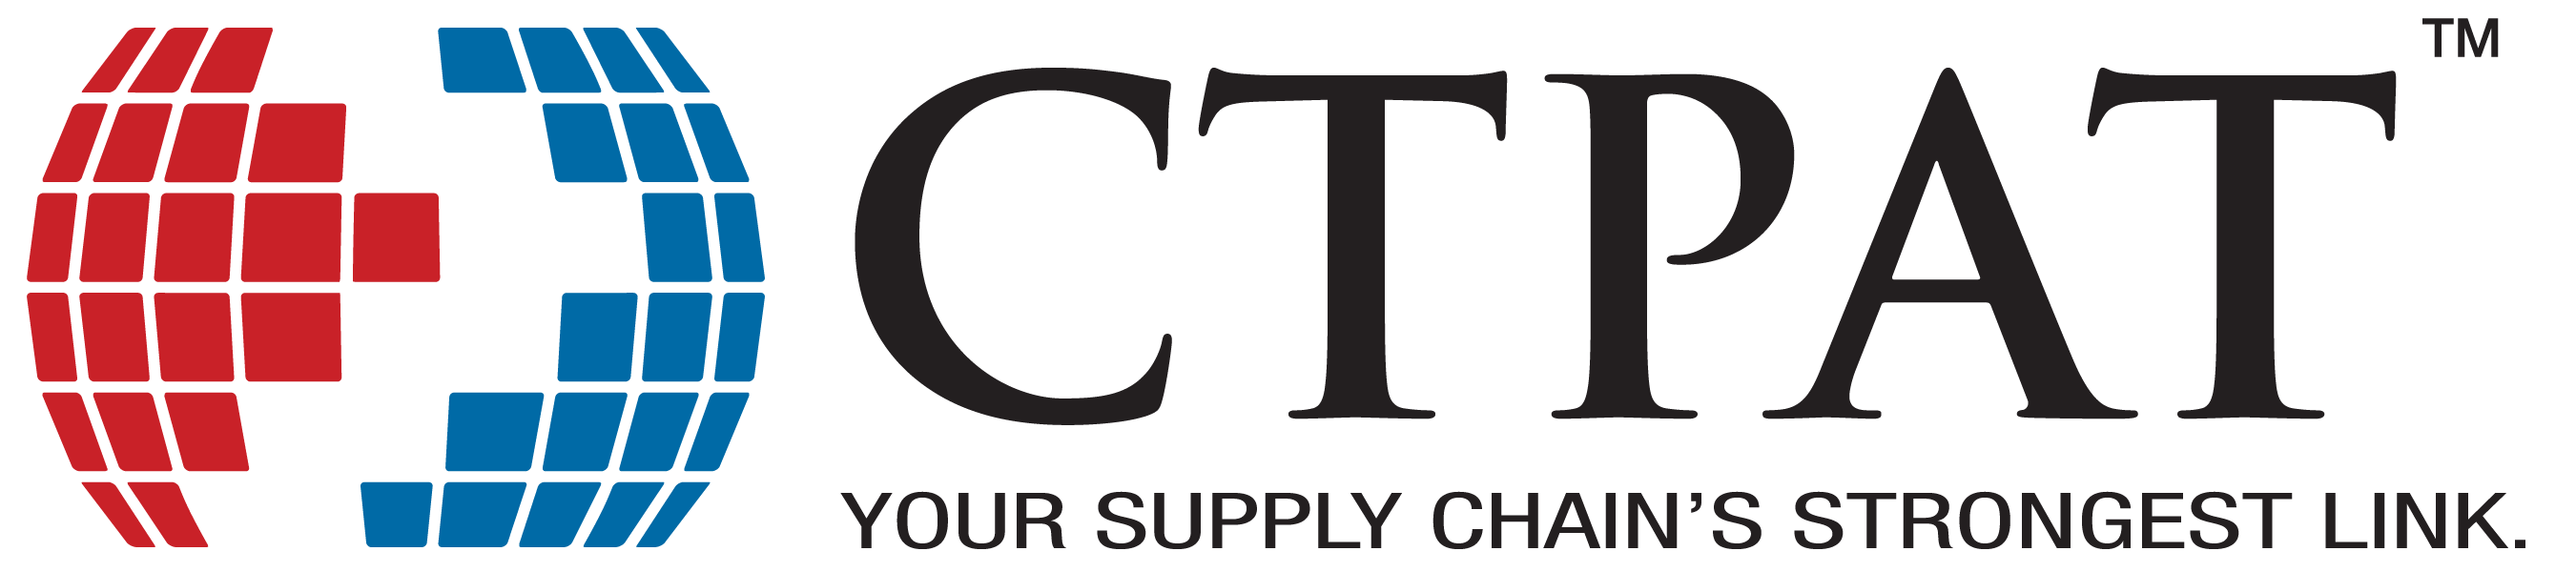 c tpat Seal verification (receiving department) from $ 3000 7-point ocean container inspection from $ 3000.